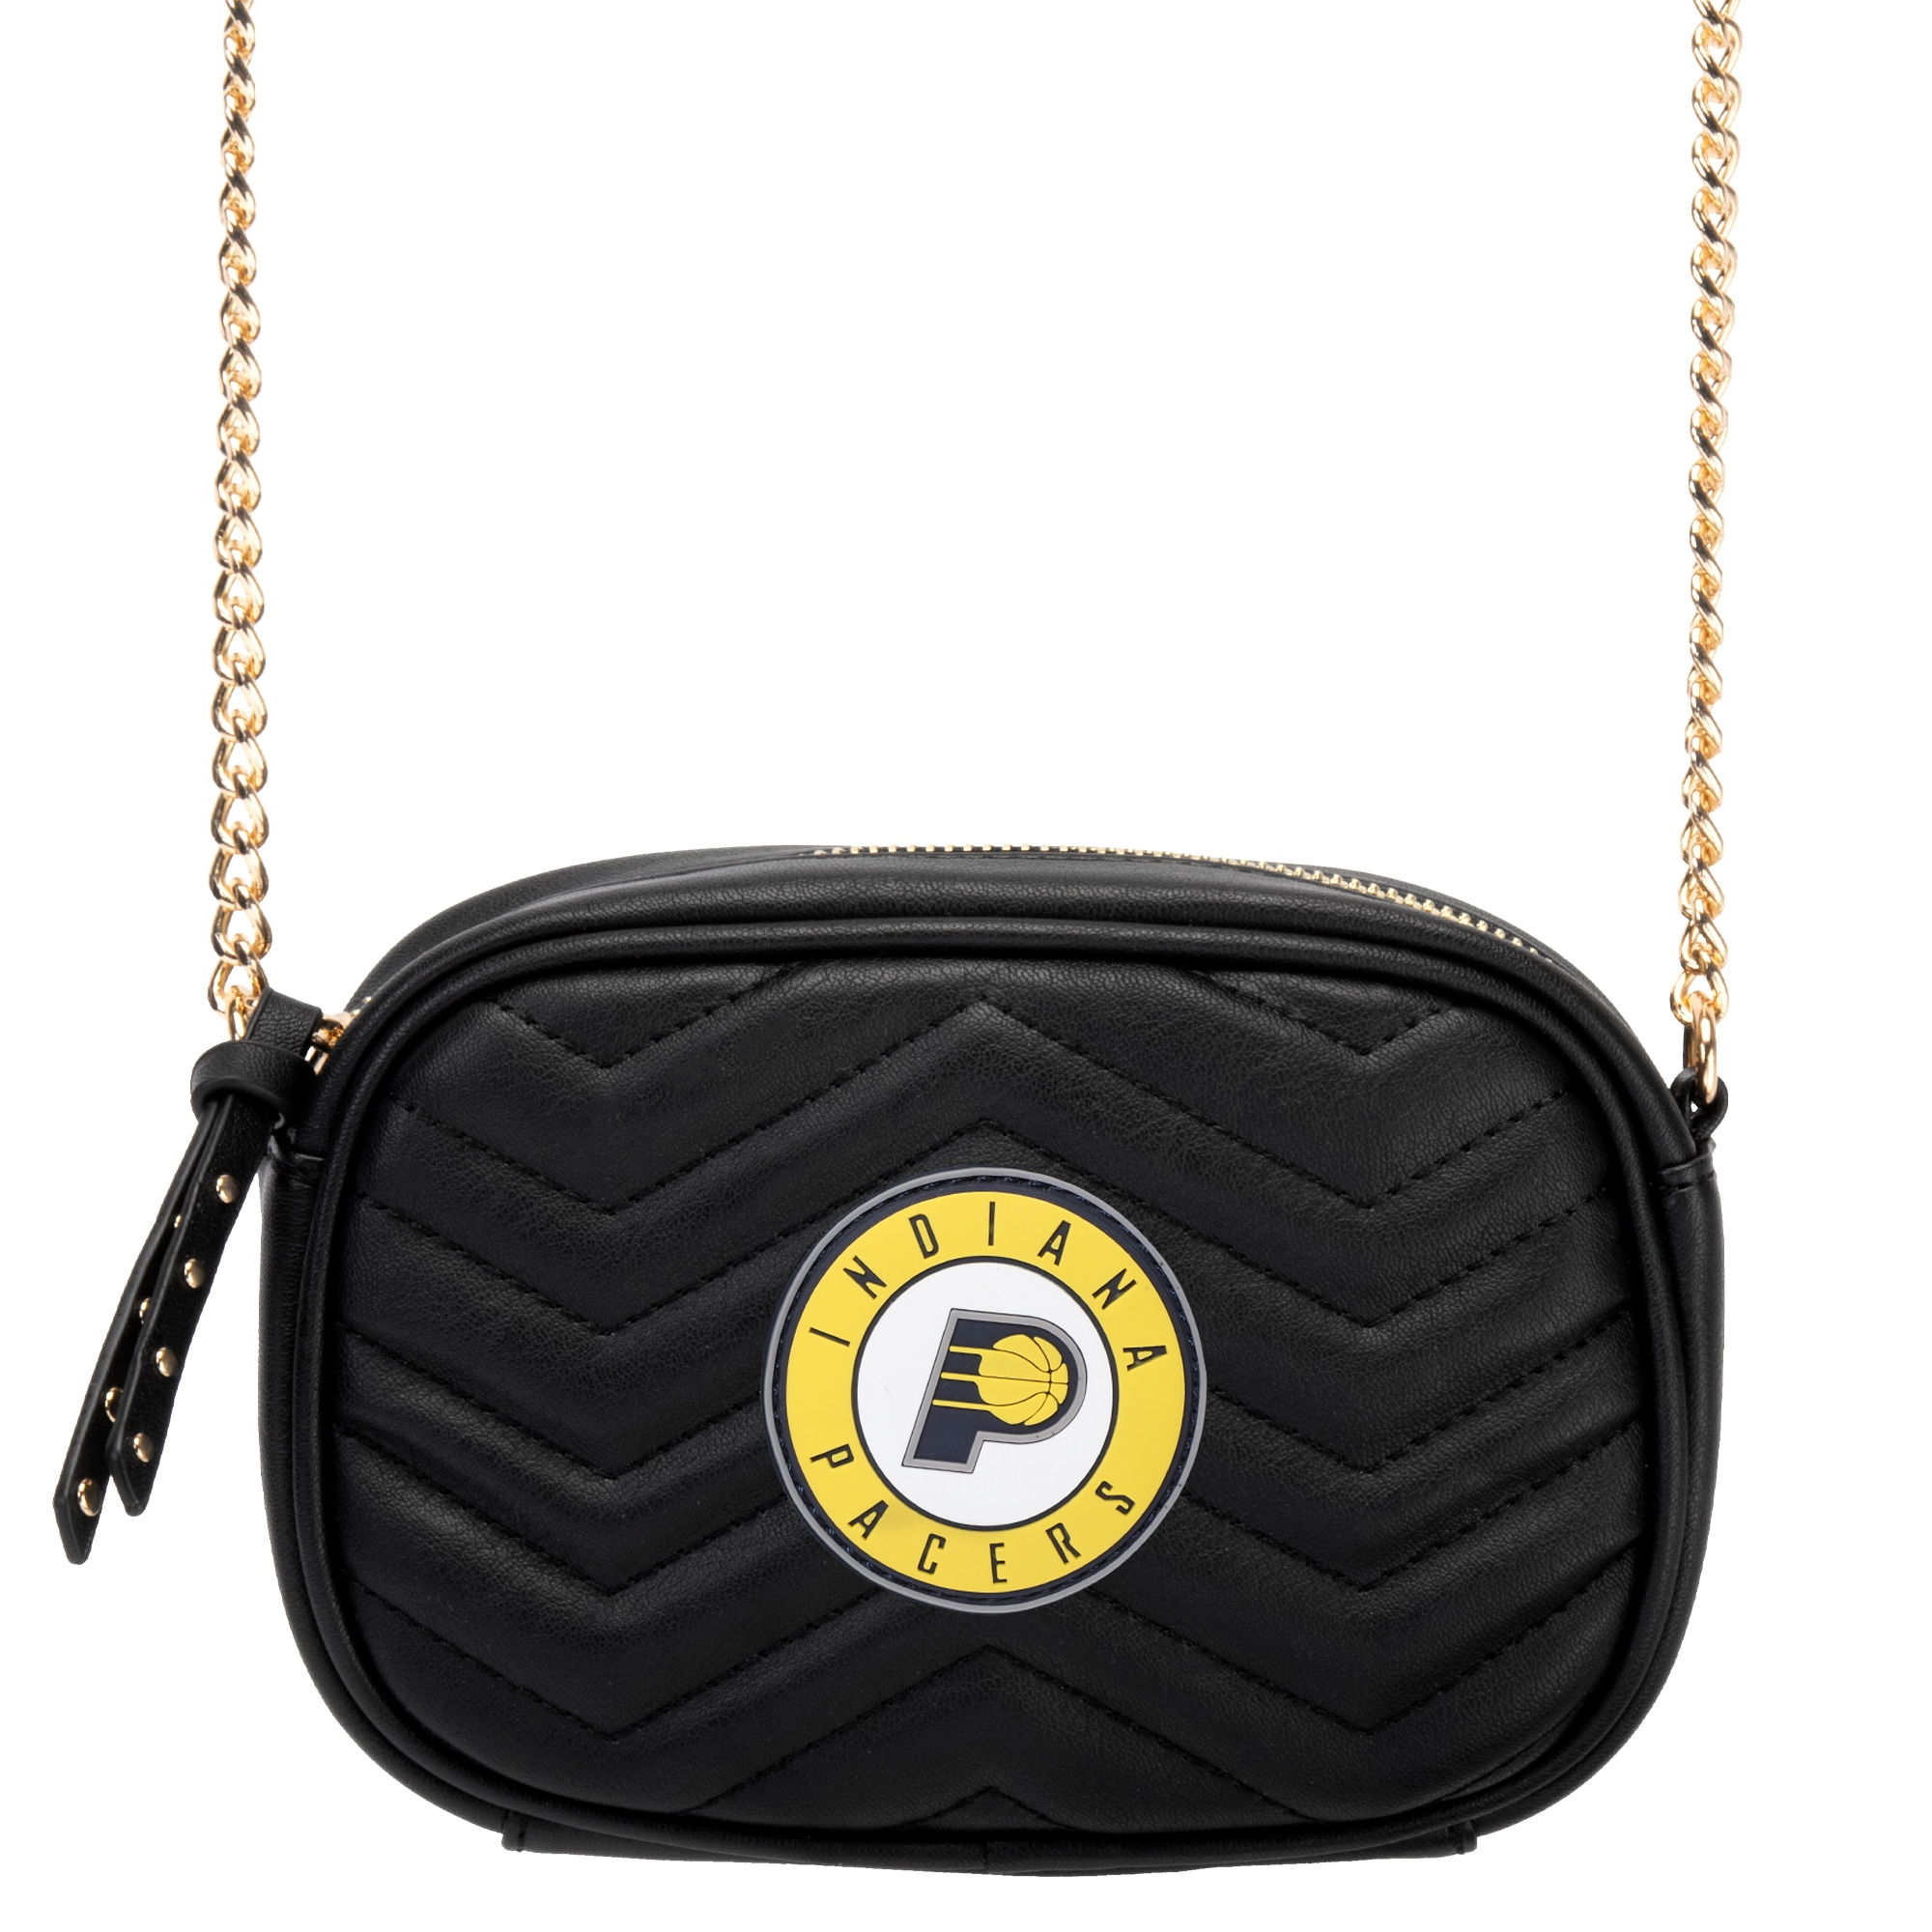 Indiana Pacers Women's Crossbody Bag - Black